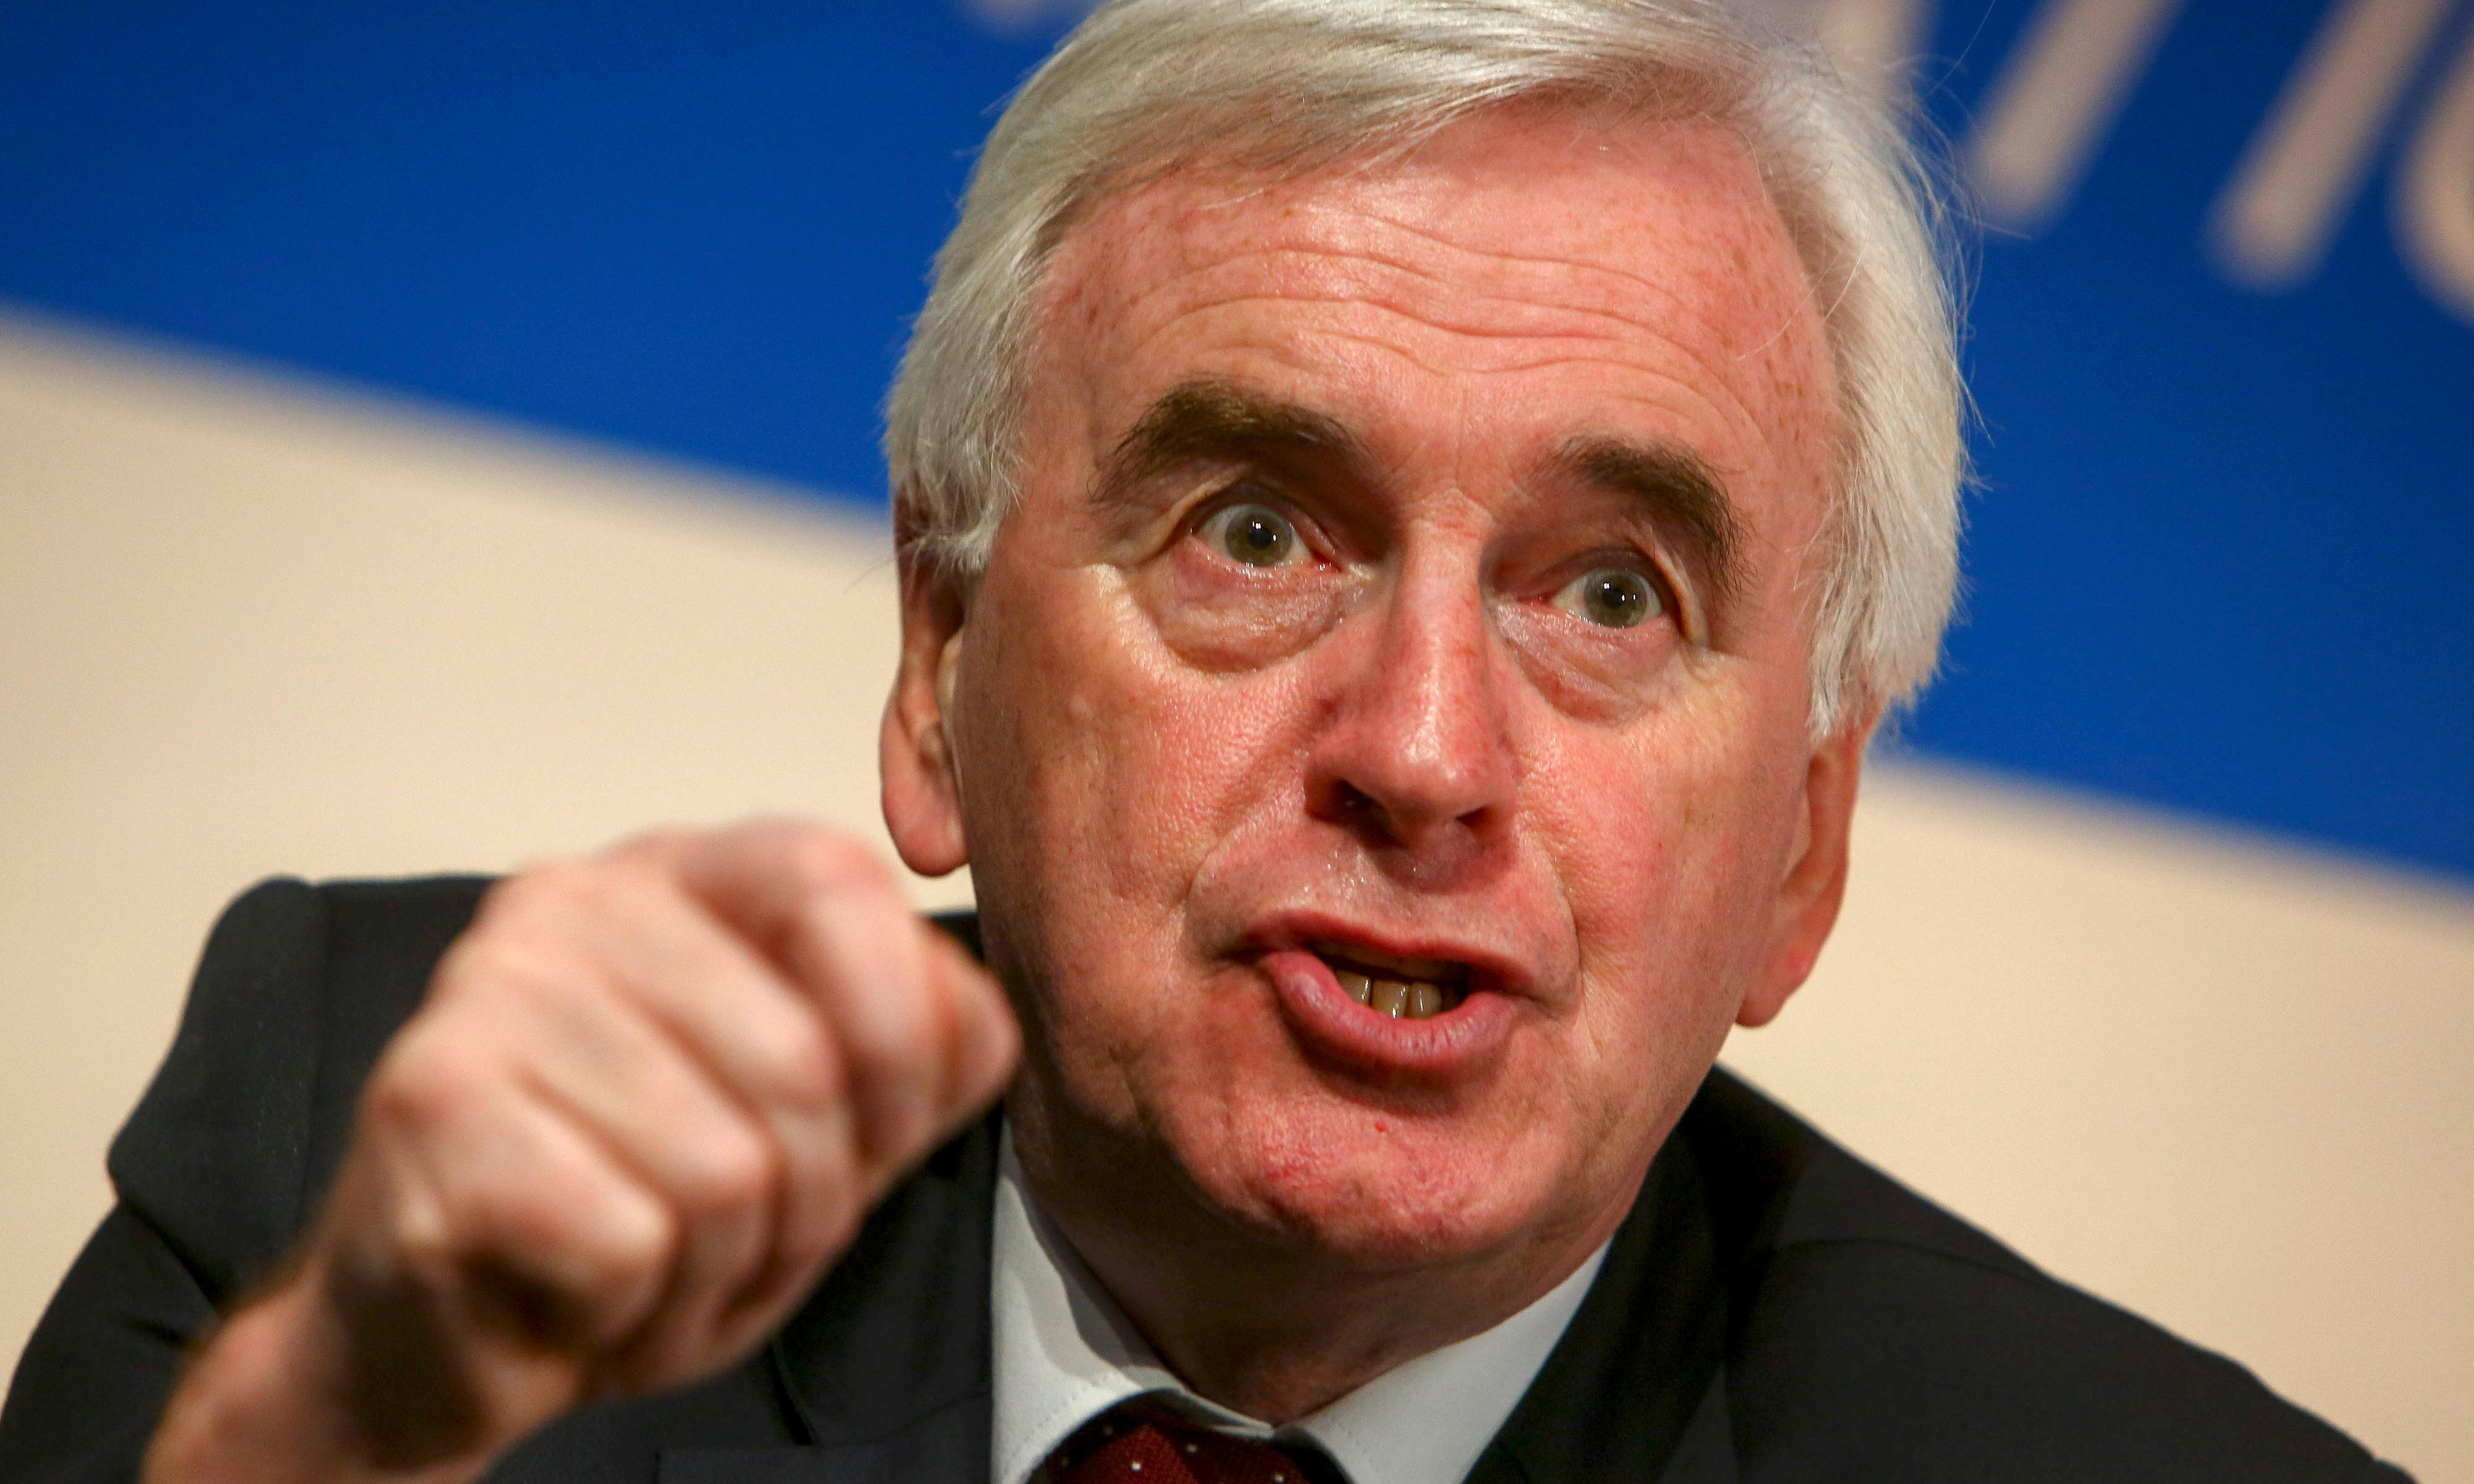 Labour would break up Treasury and create northern No 11, says McDonnell